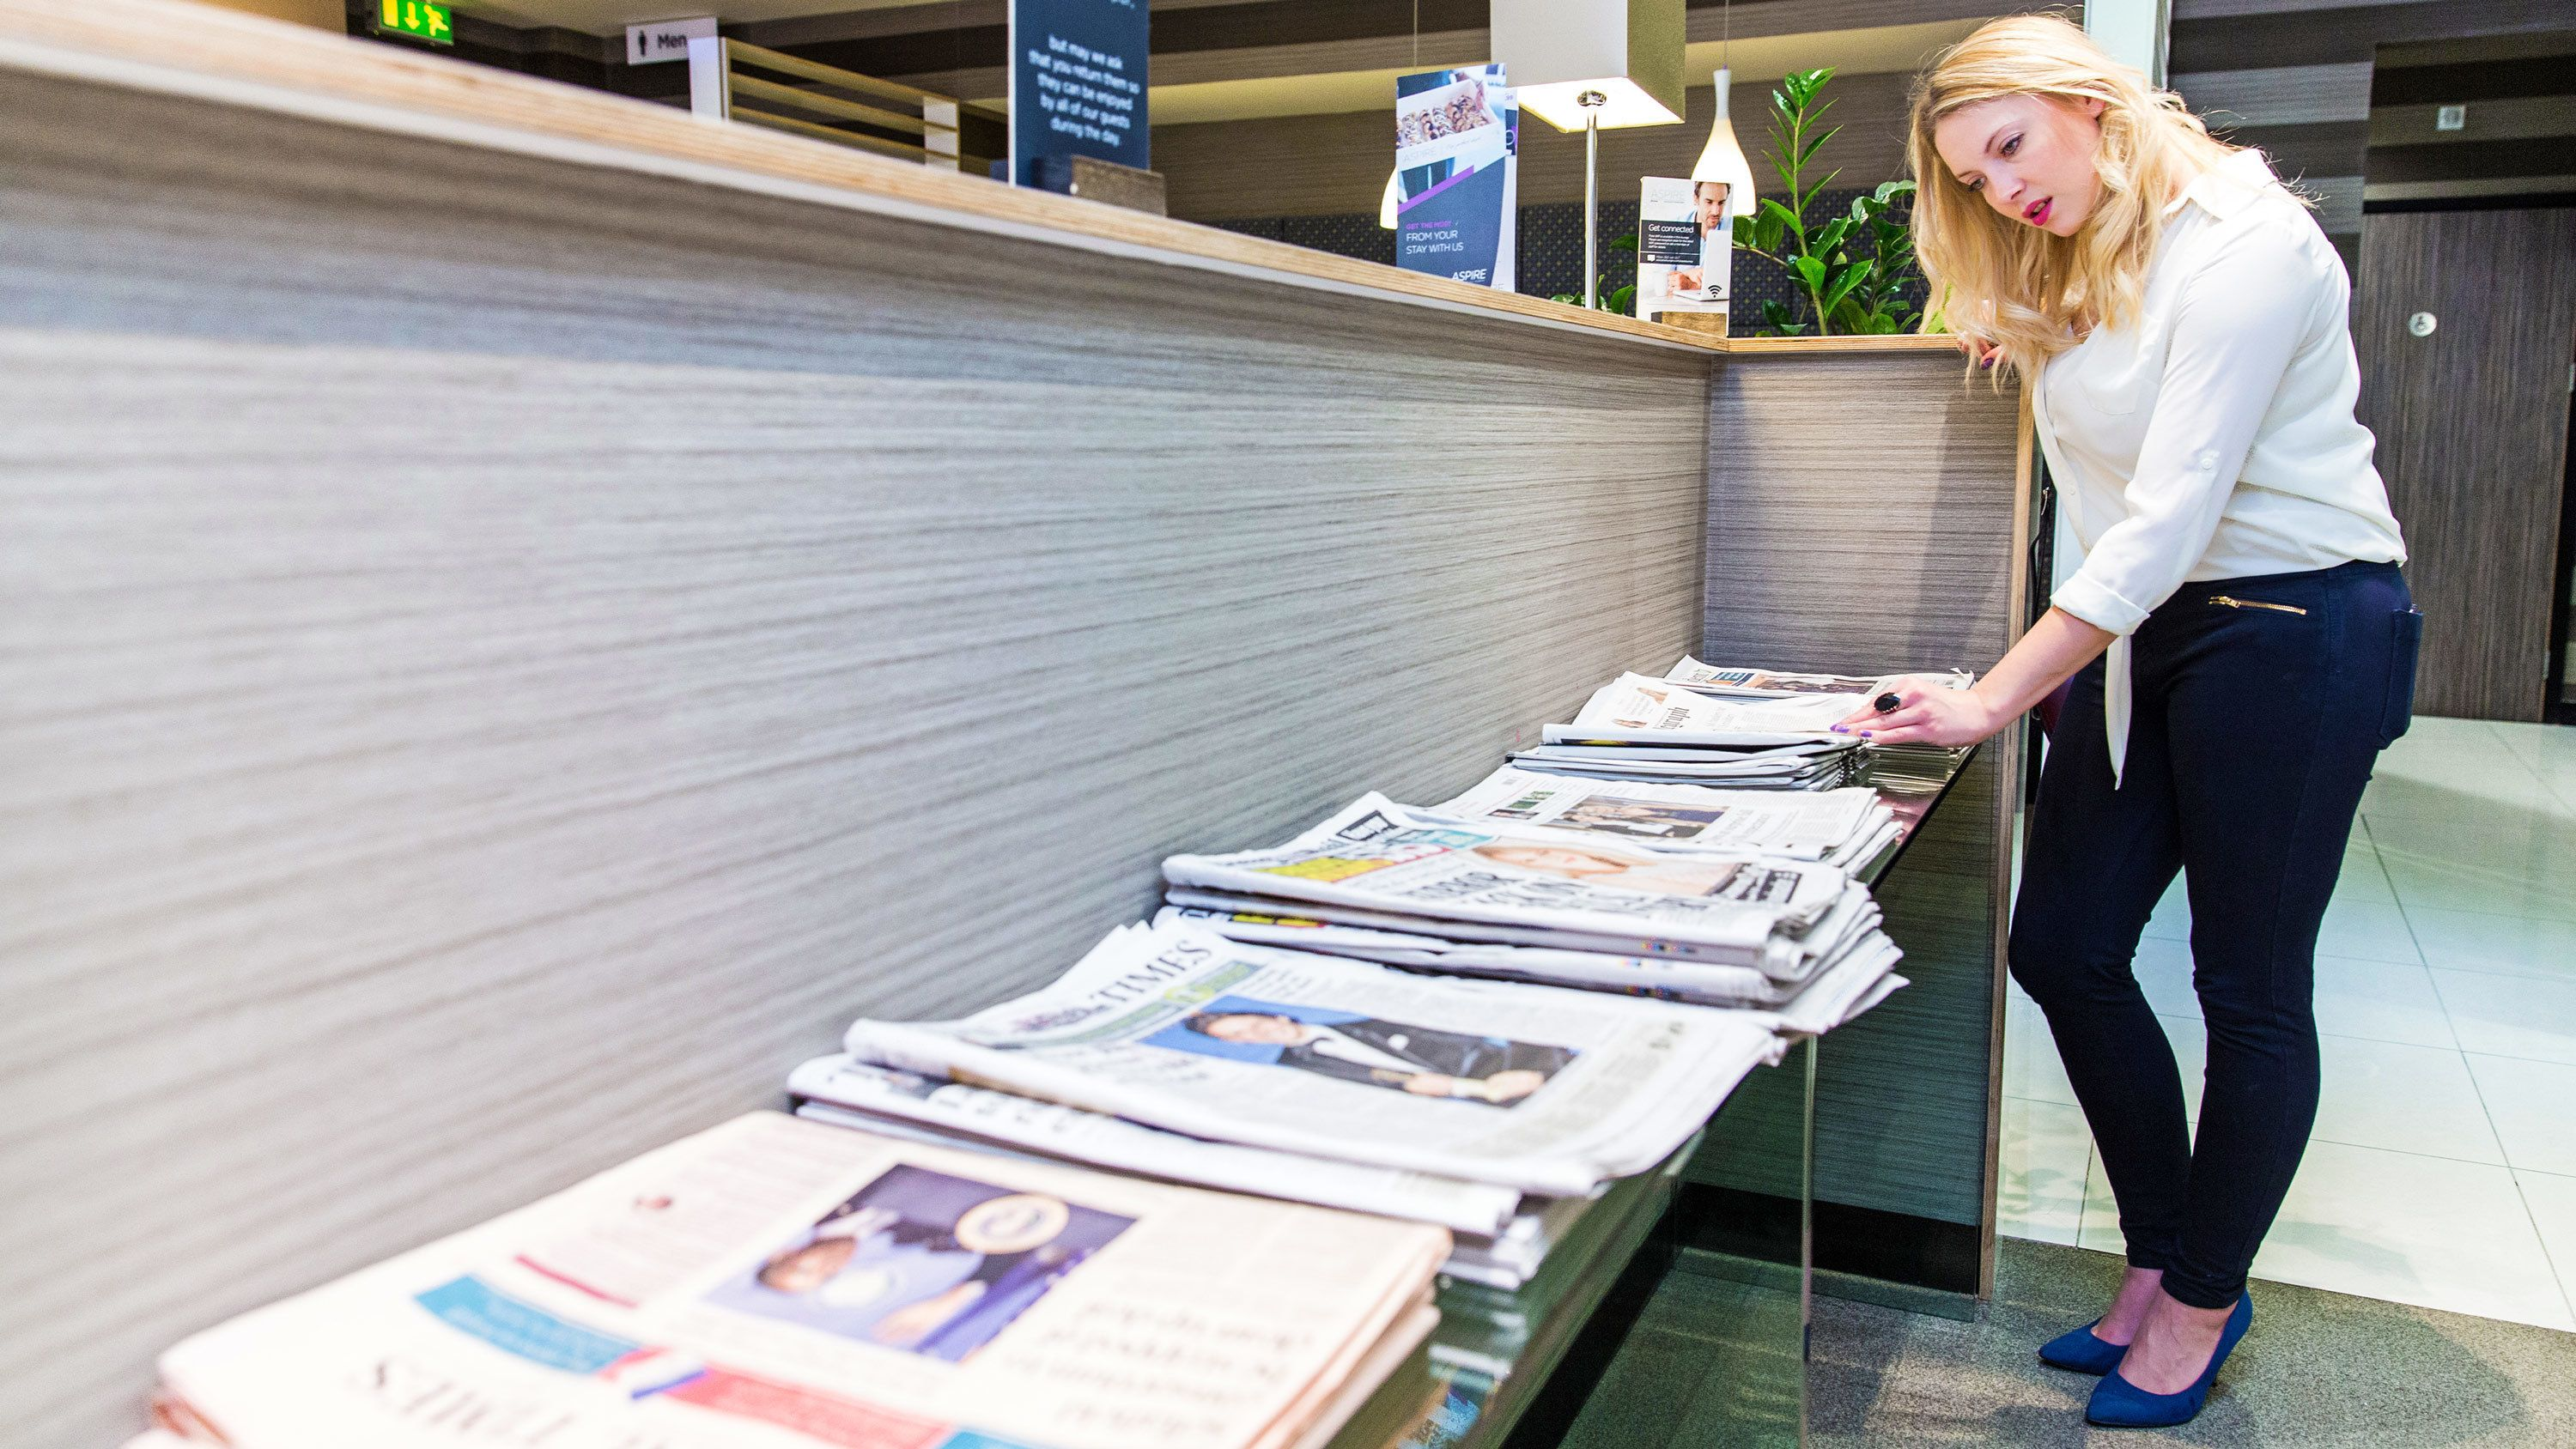 woman sifting through papers at the news stand at the airport lounge